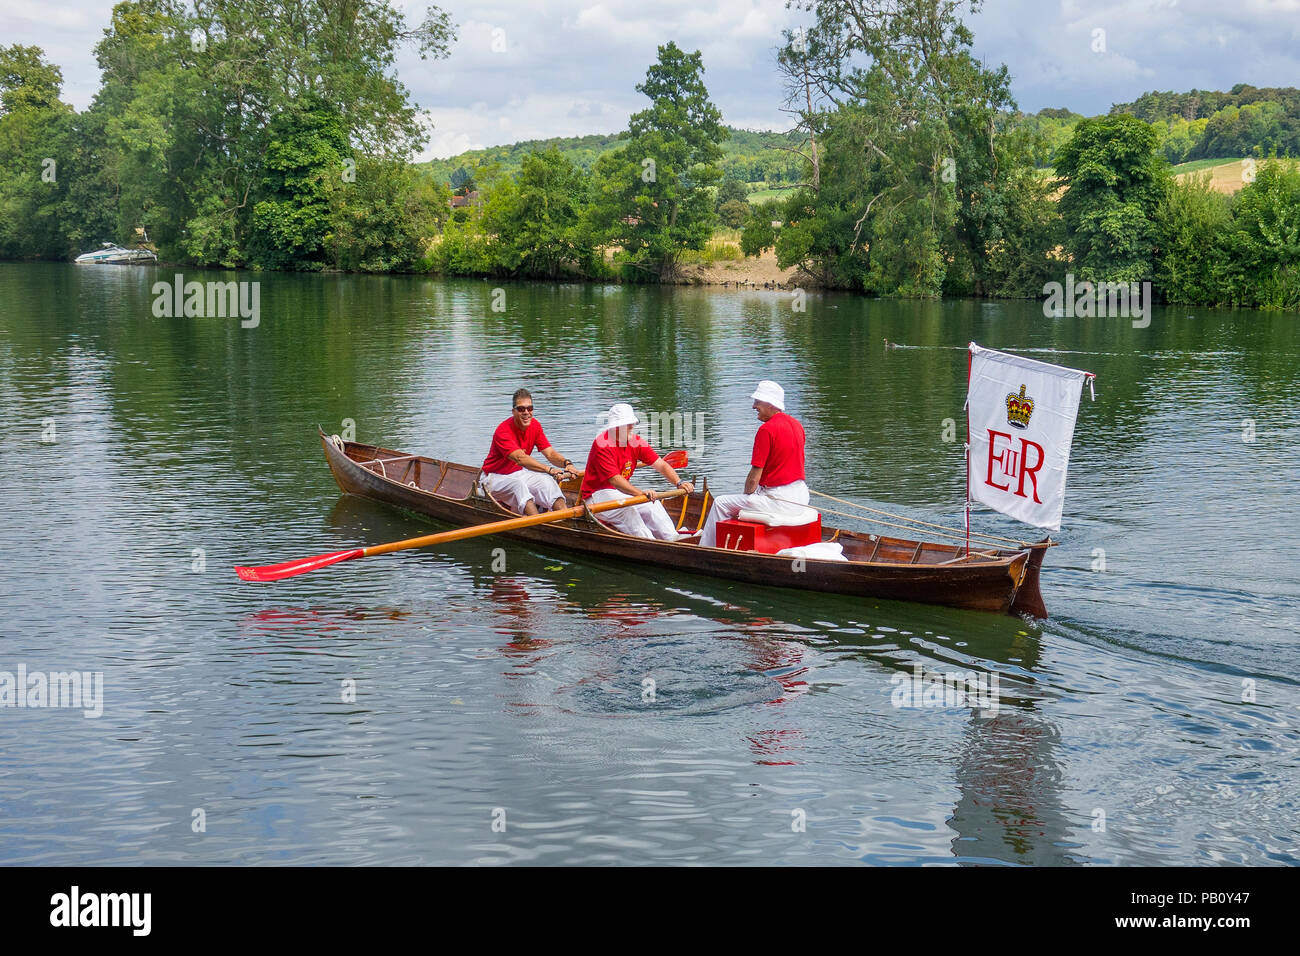 England, Oxfordshire, Henley, Swan Upping on River Thames, Skiff with Royal Marker on board - Stock Image